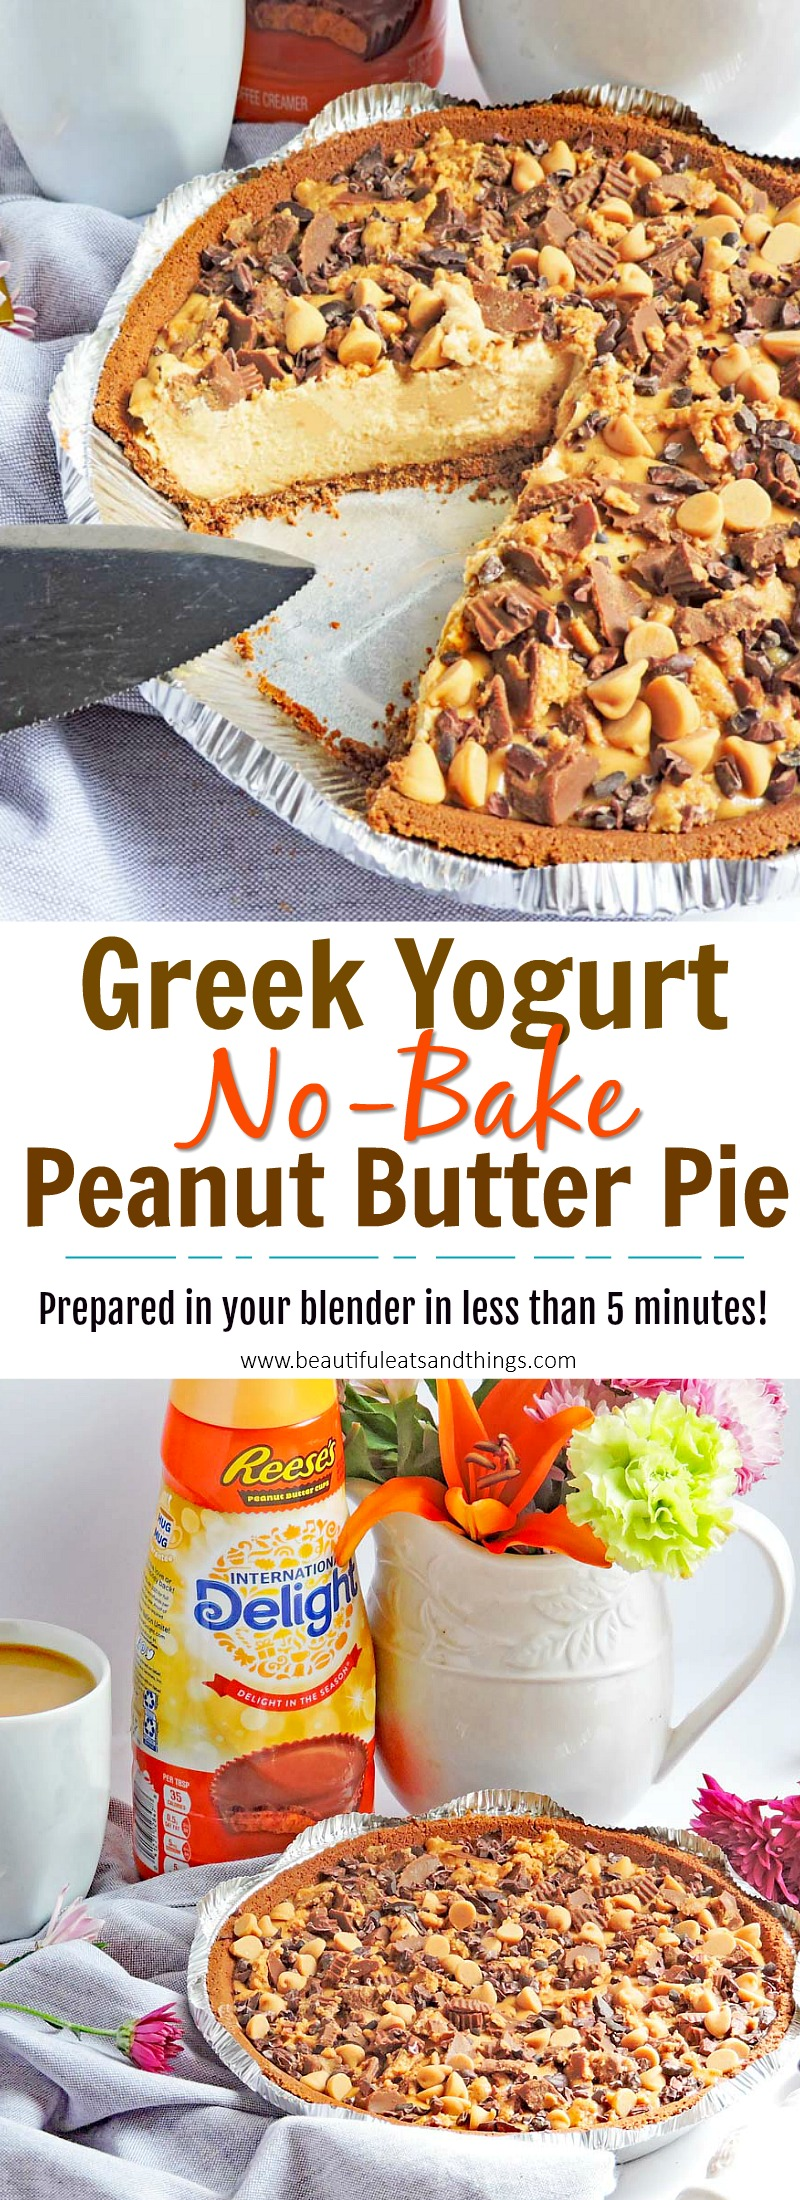 No-Bake Greek Yogurt Peanut Butter Pie